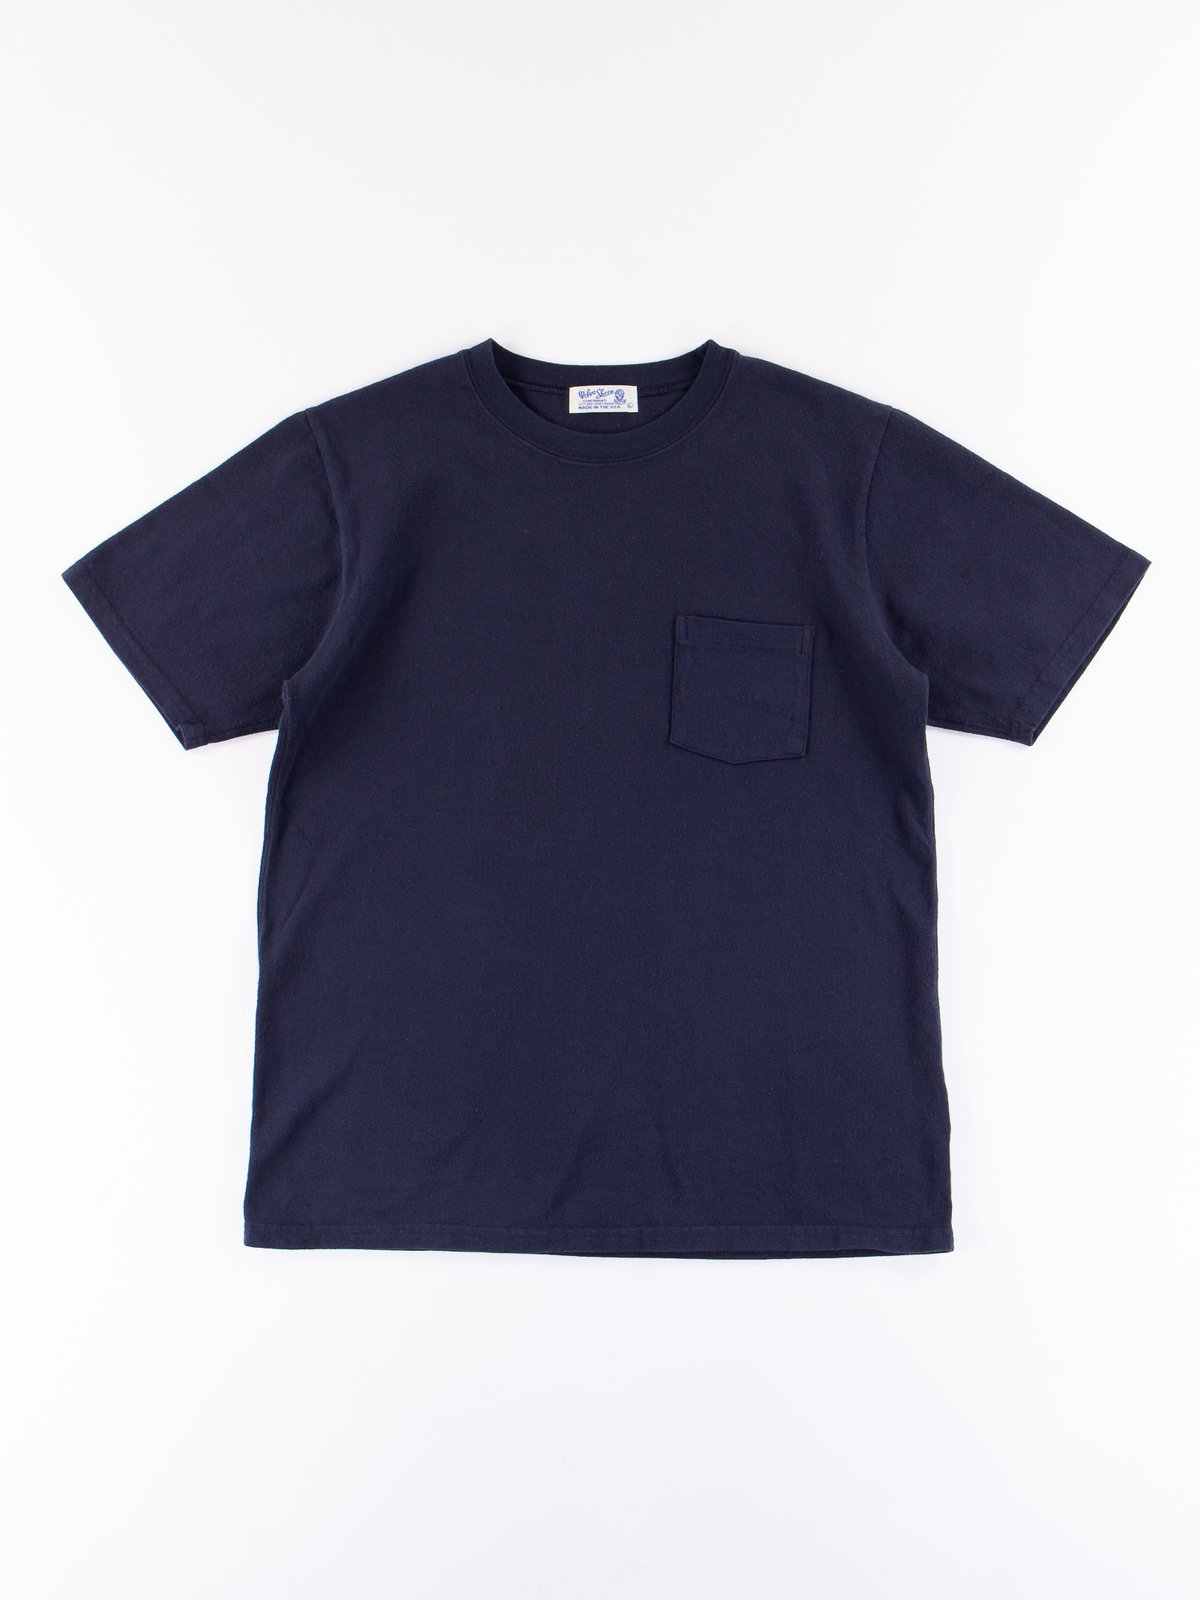 Navy Heavy Oz Pocket Tee - Image 1